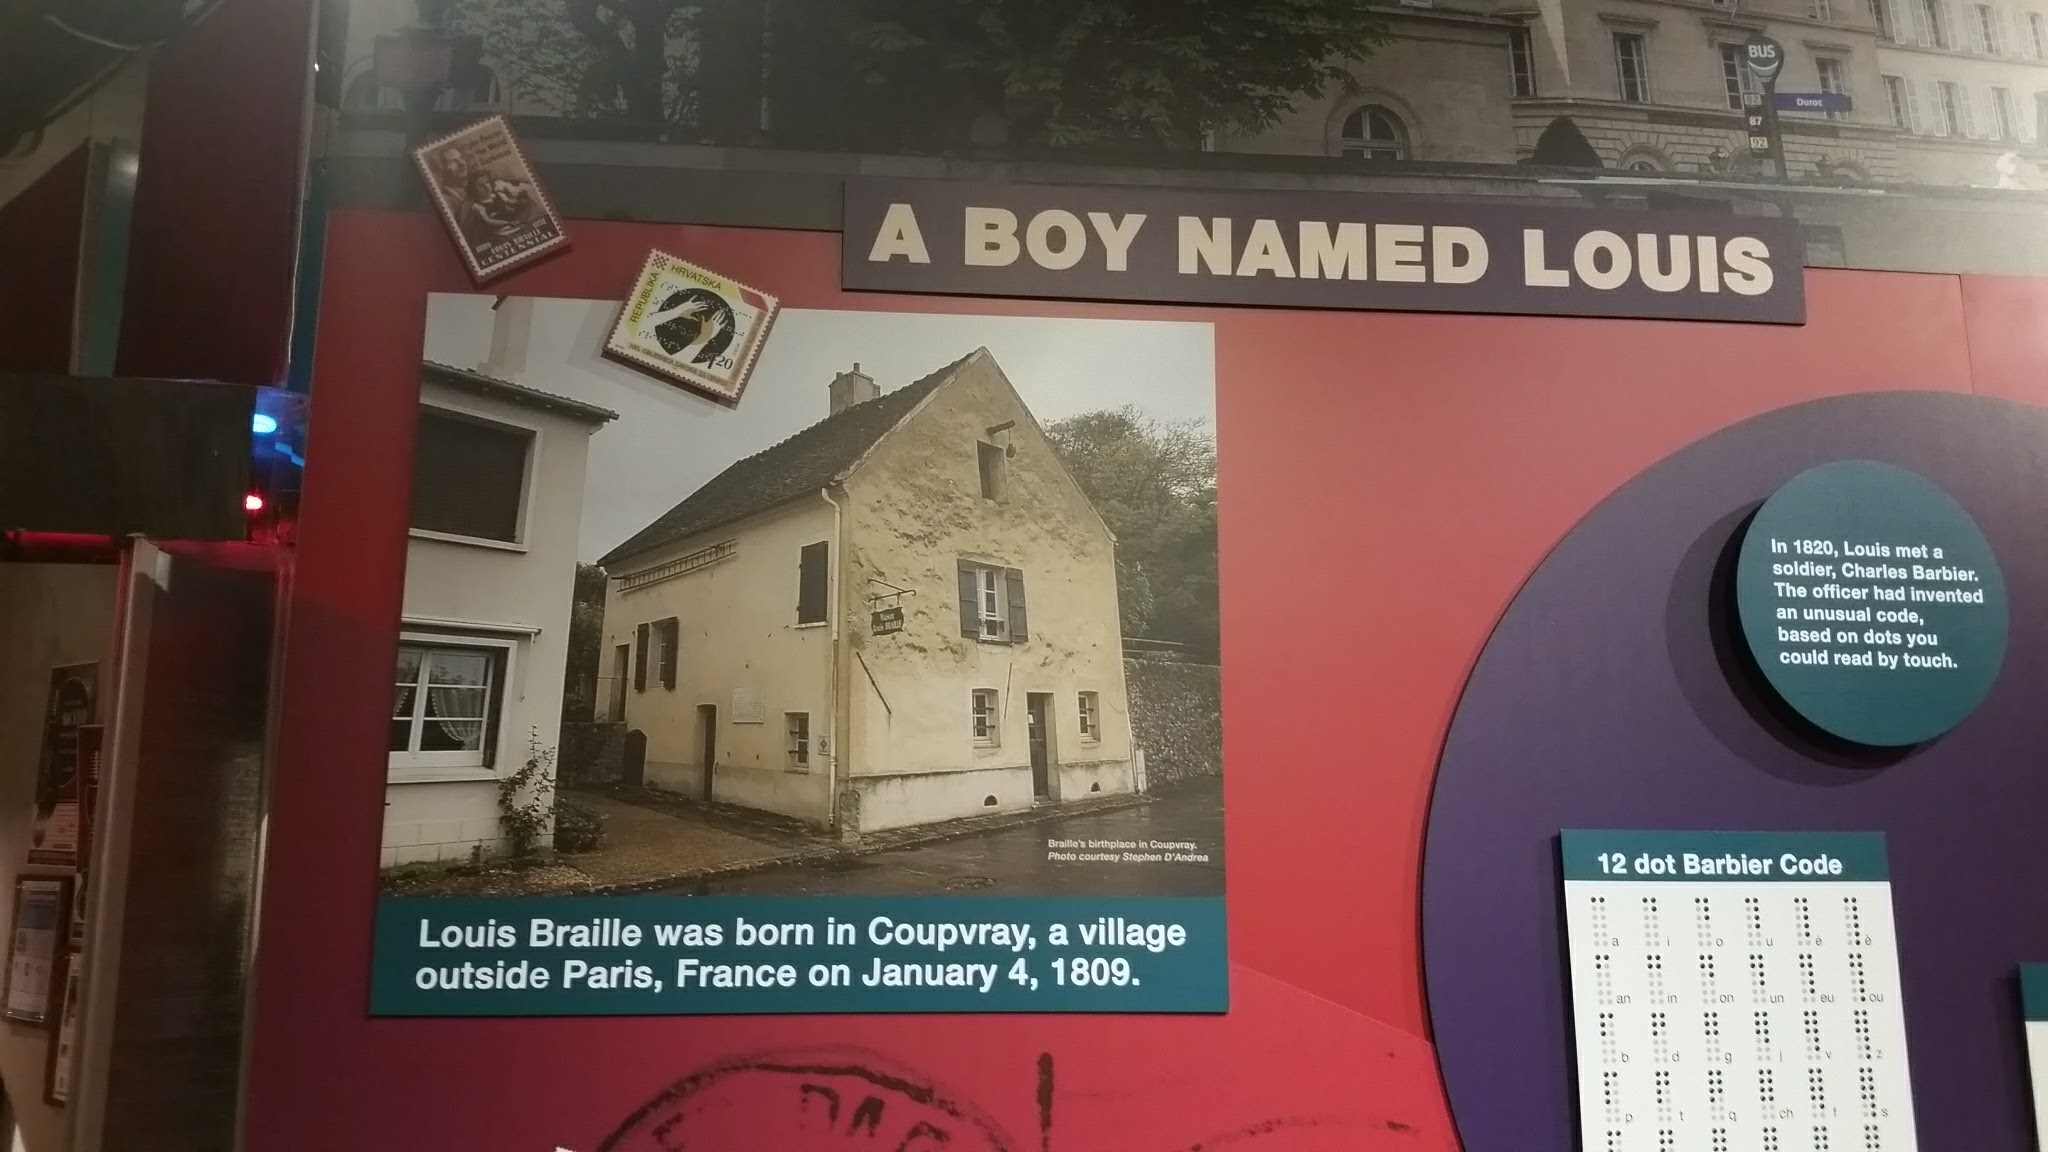 History of Louis Braille